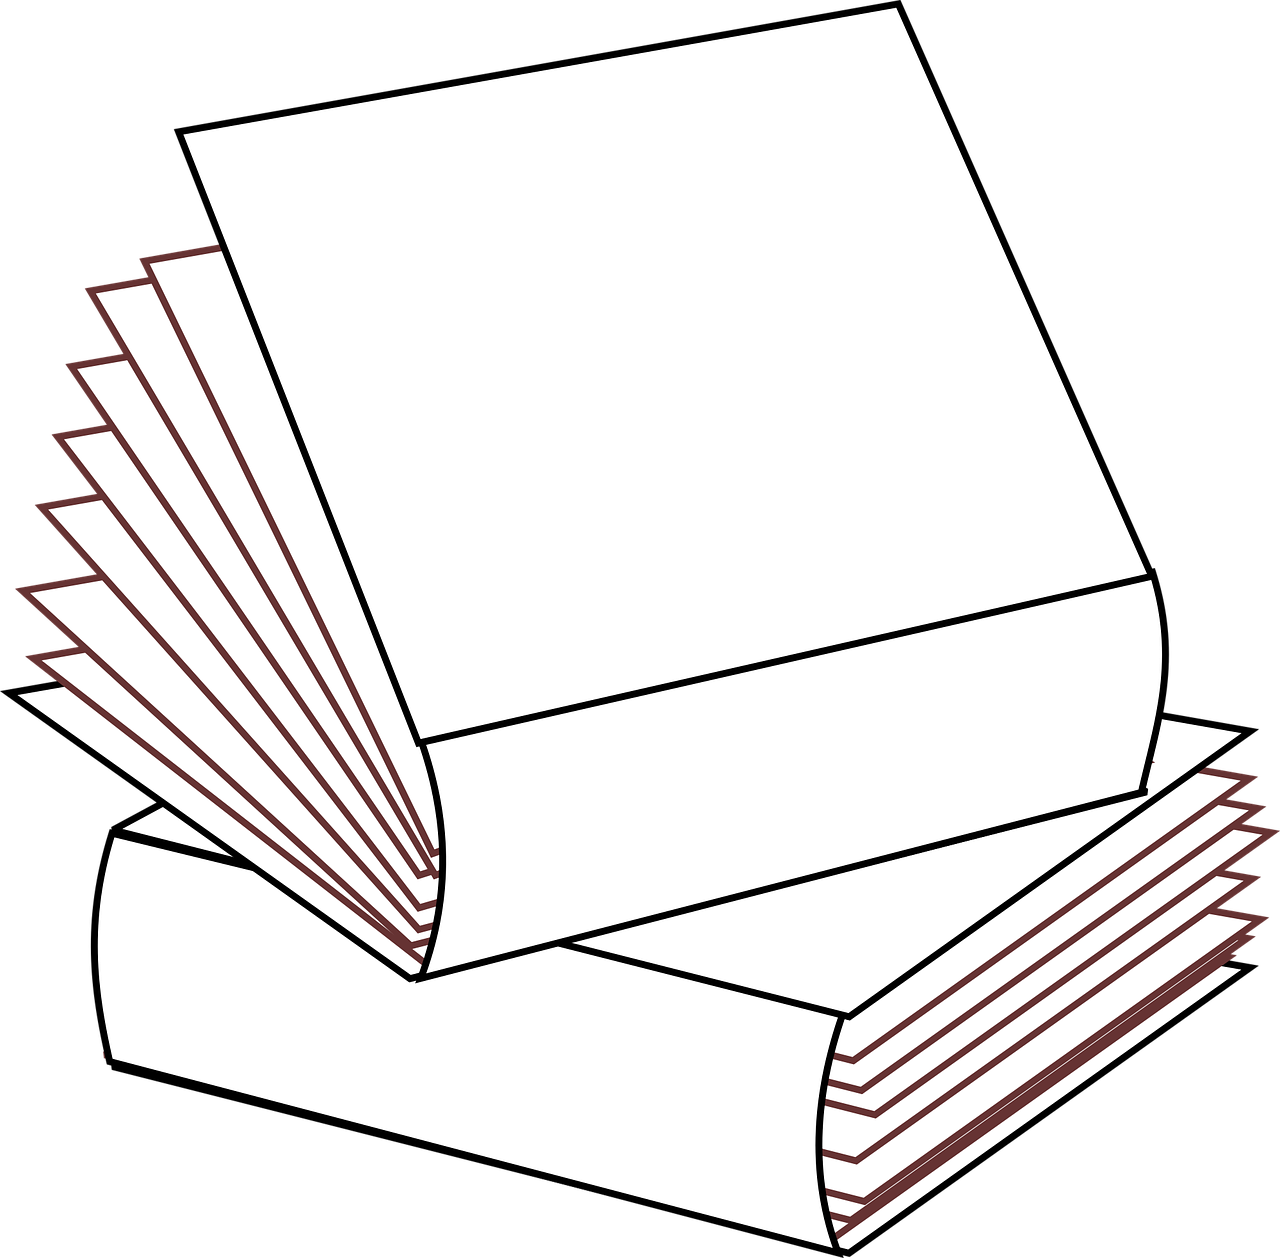 Stacked 2 books no colors,stacked books,multiple books,books clipart ...